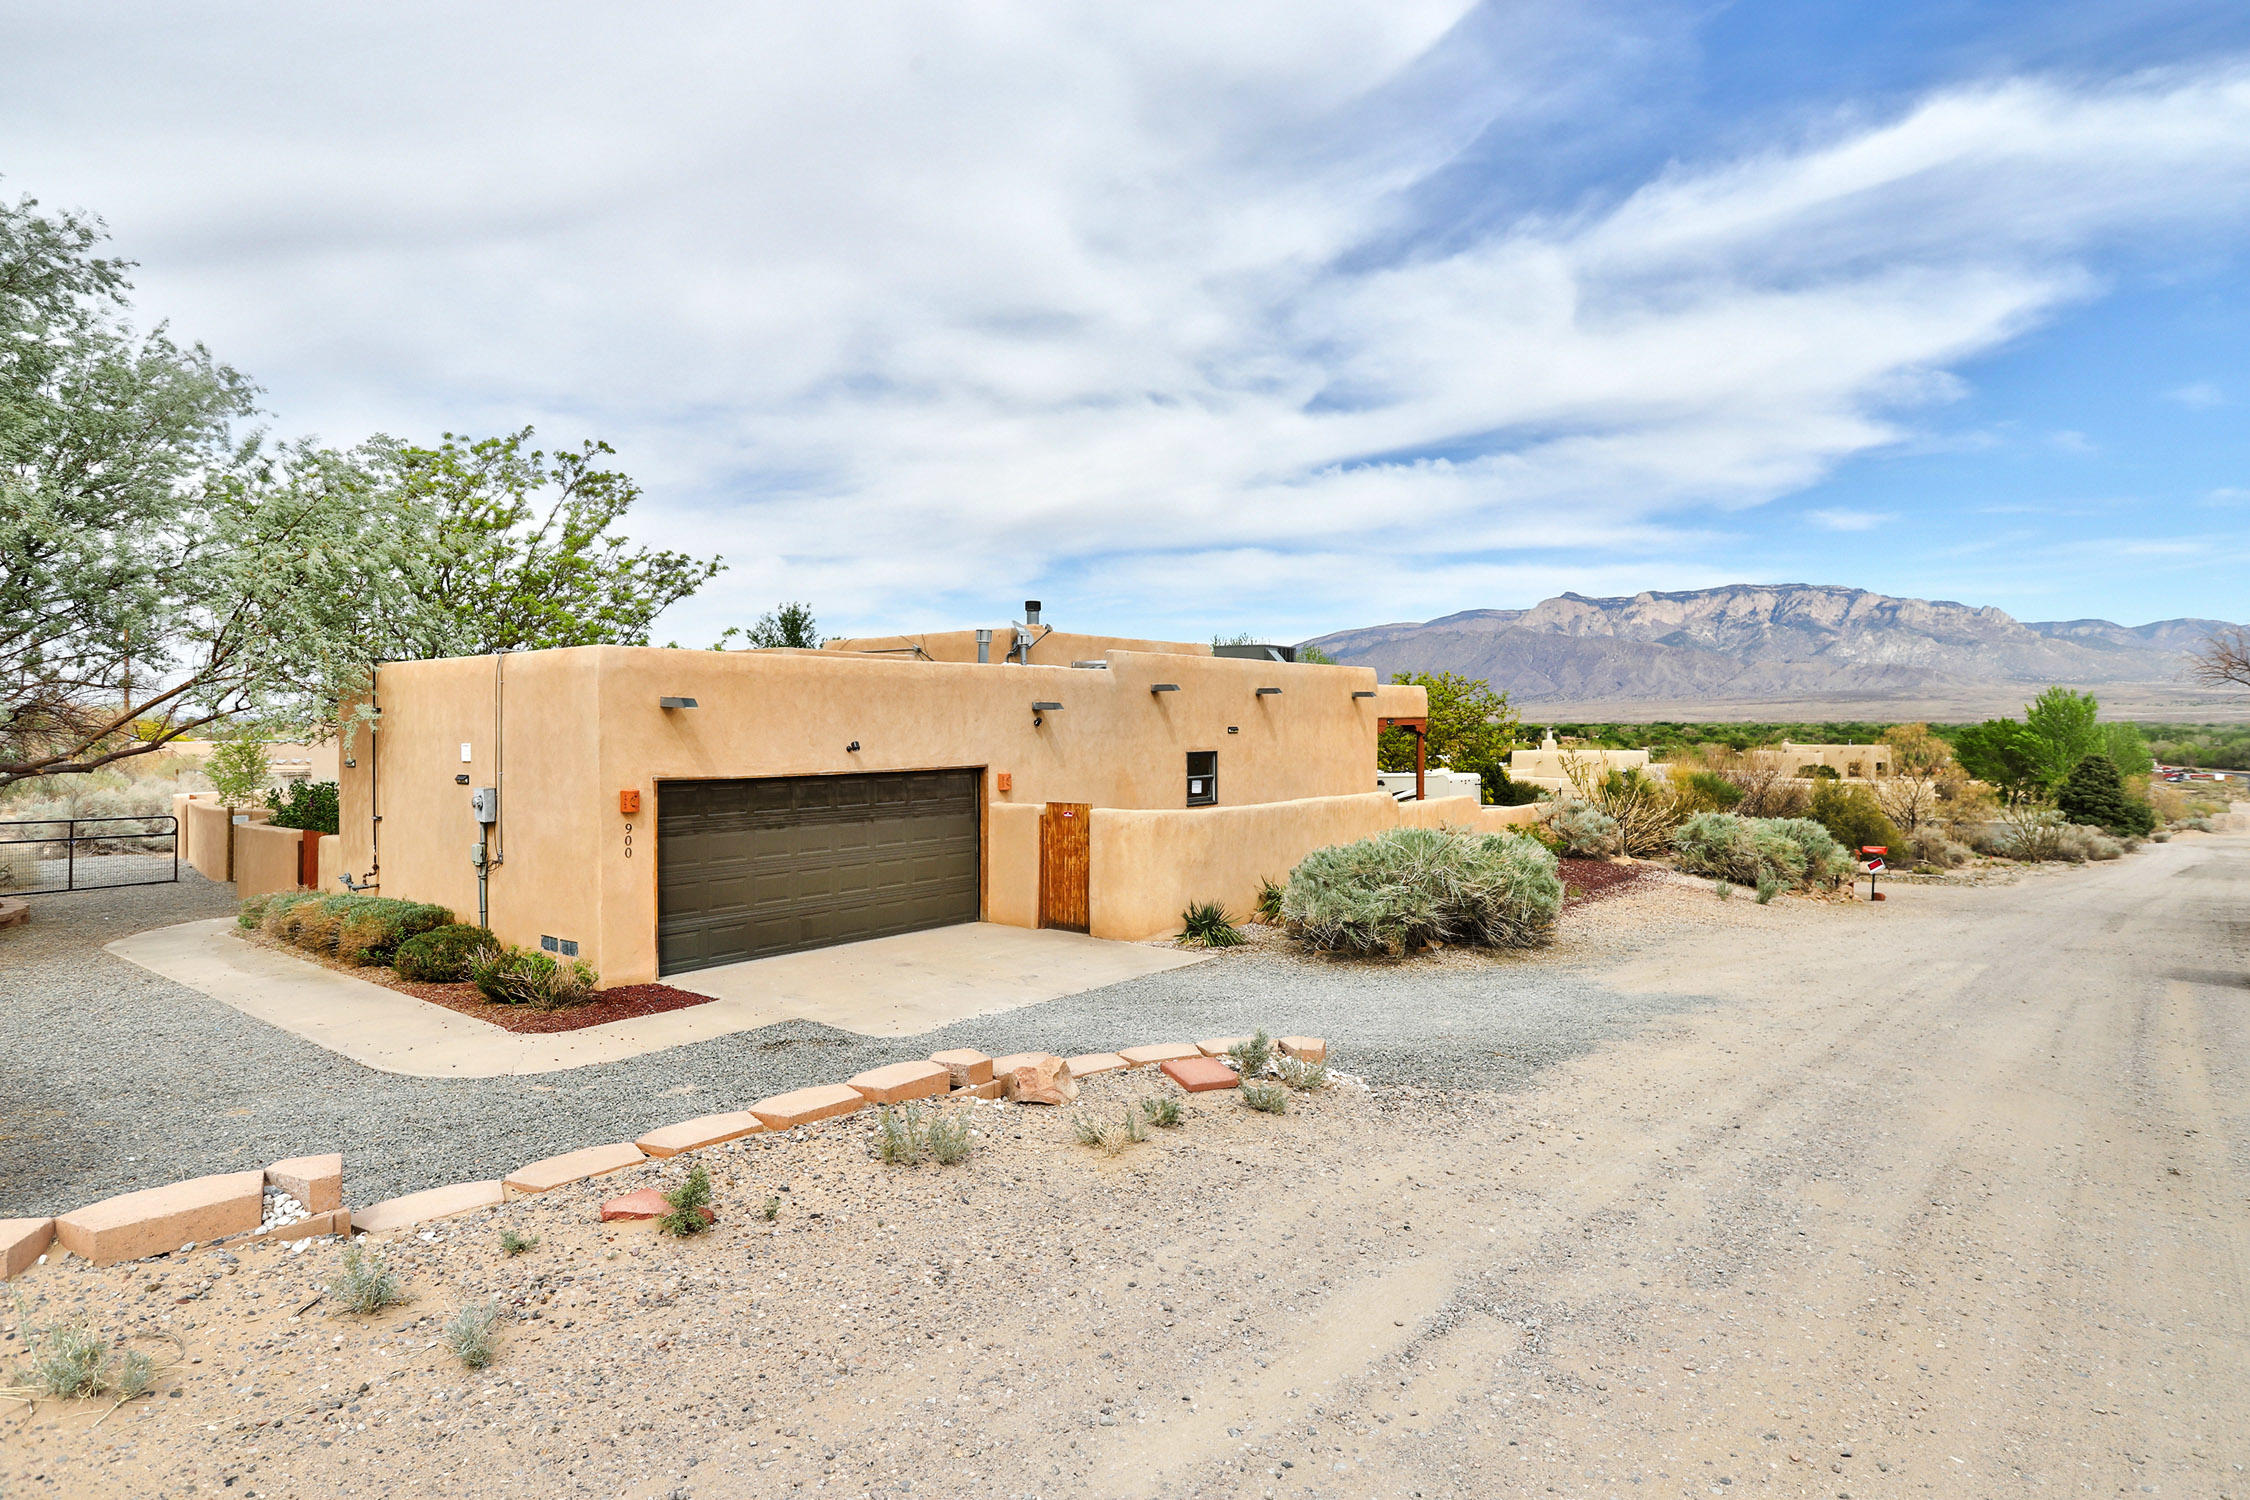 Southwest style home with Sandia mountain views . Stainless steel appliances. Granite countertops.  Viga ceilings, Saltillo tile. Low maintenance yard.  New Paint, New Carpet, New fixtures.